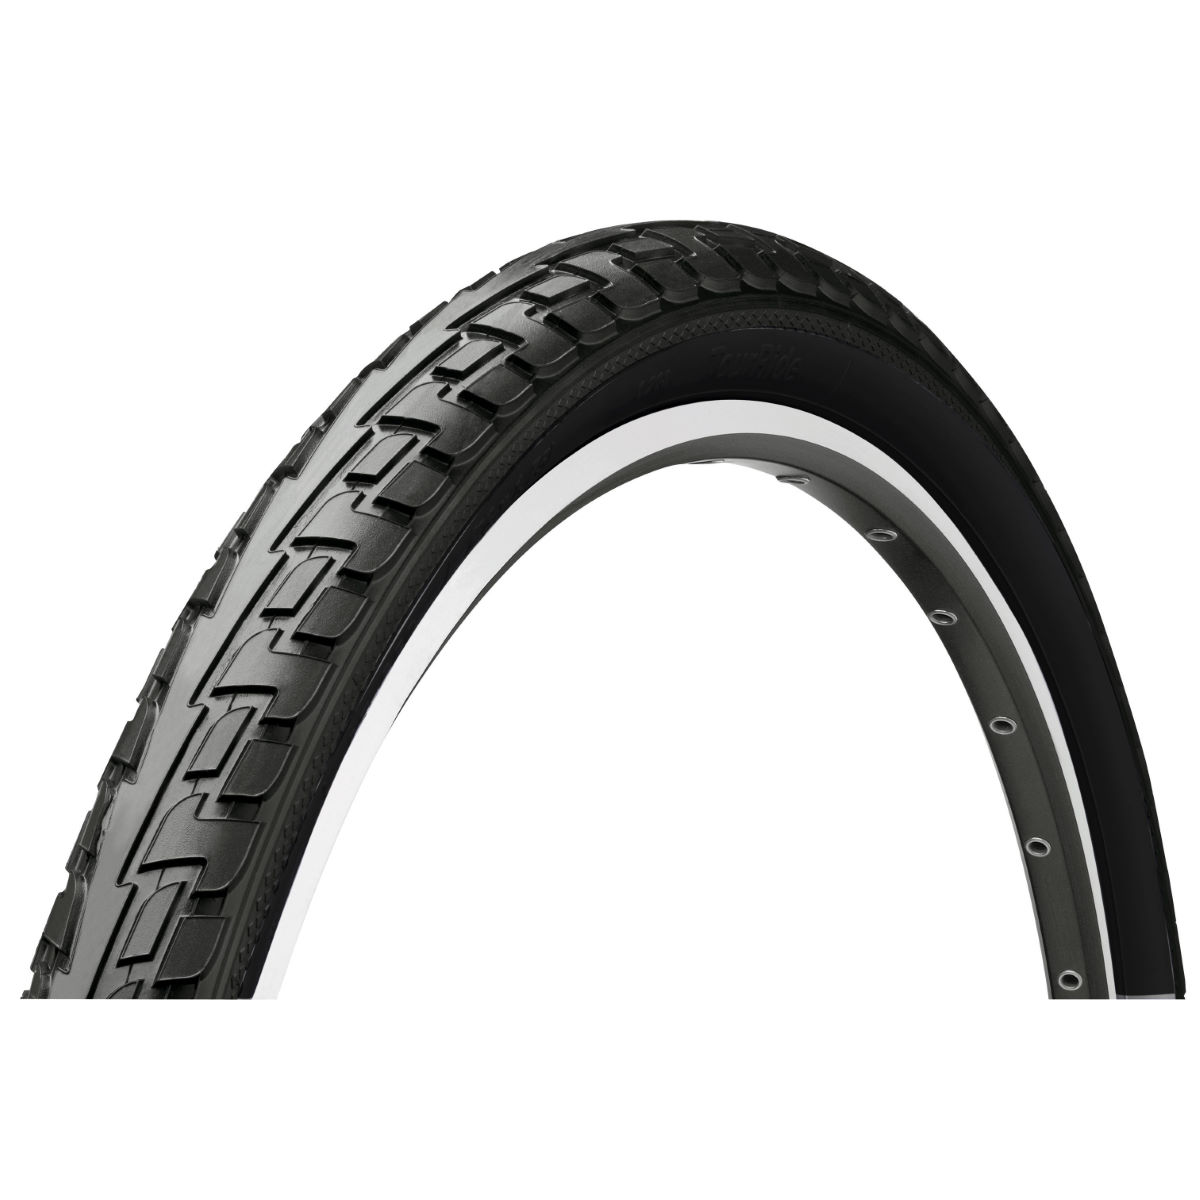 Continental tourride city road tyre hybrid and touring tyres black tyc00222